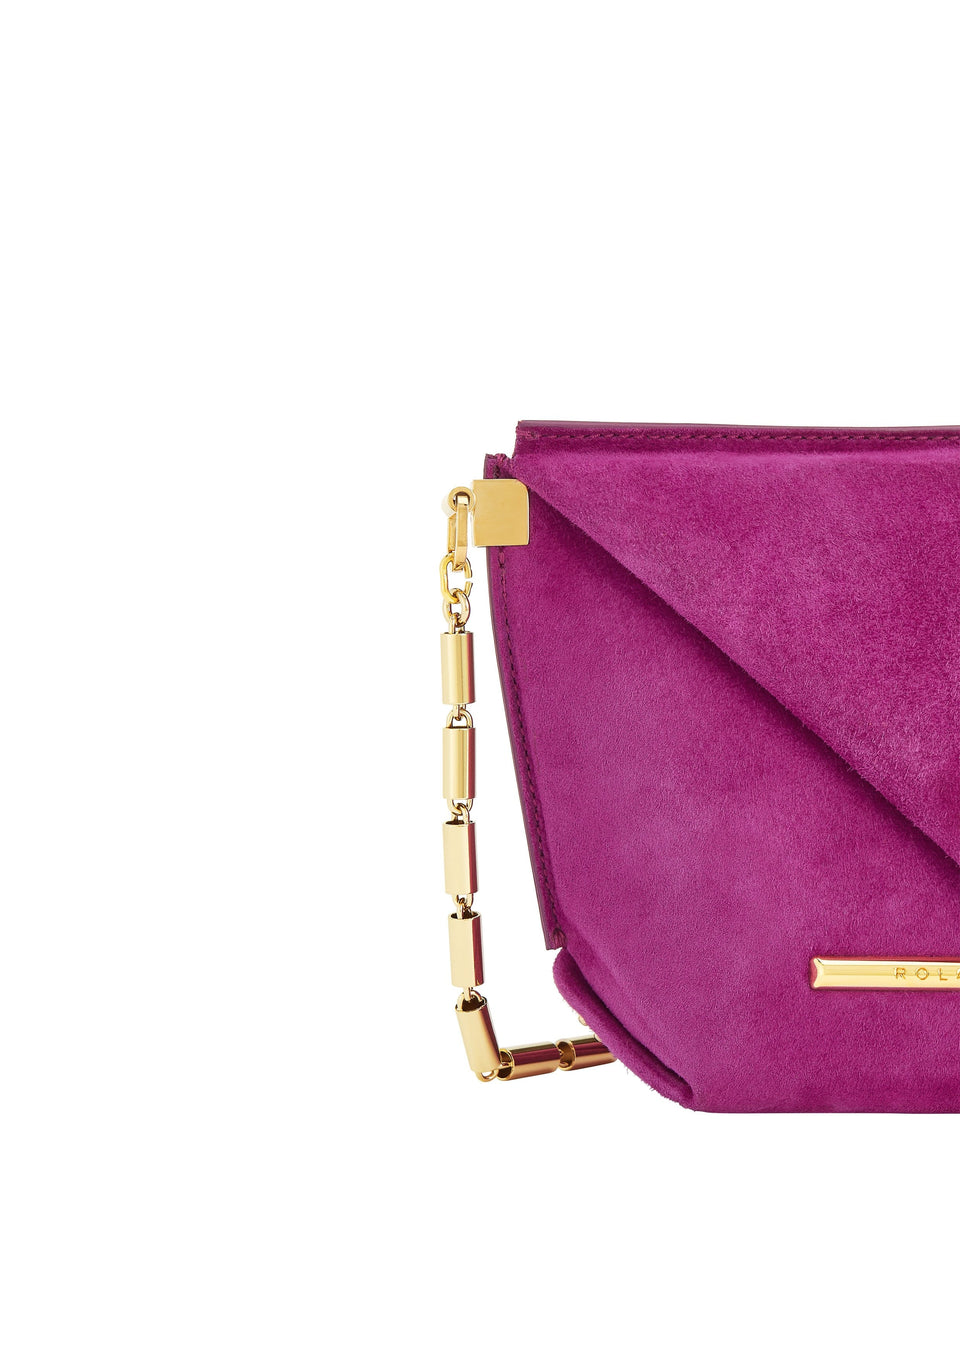 Mini Classico Bag In Cerise from Roland Mouret